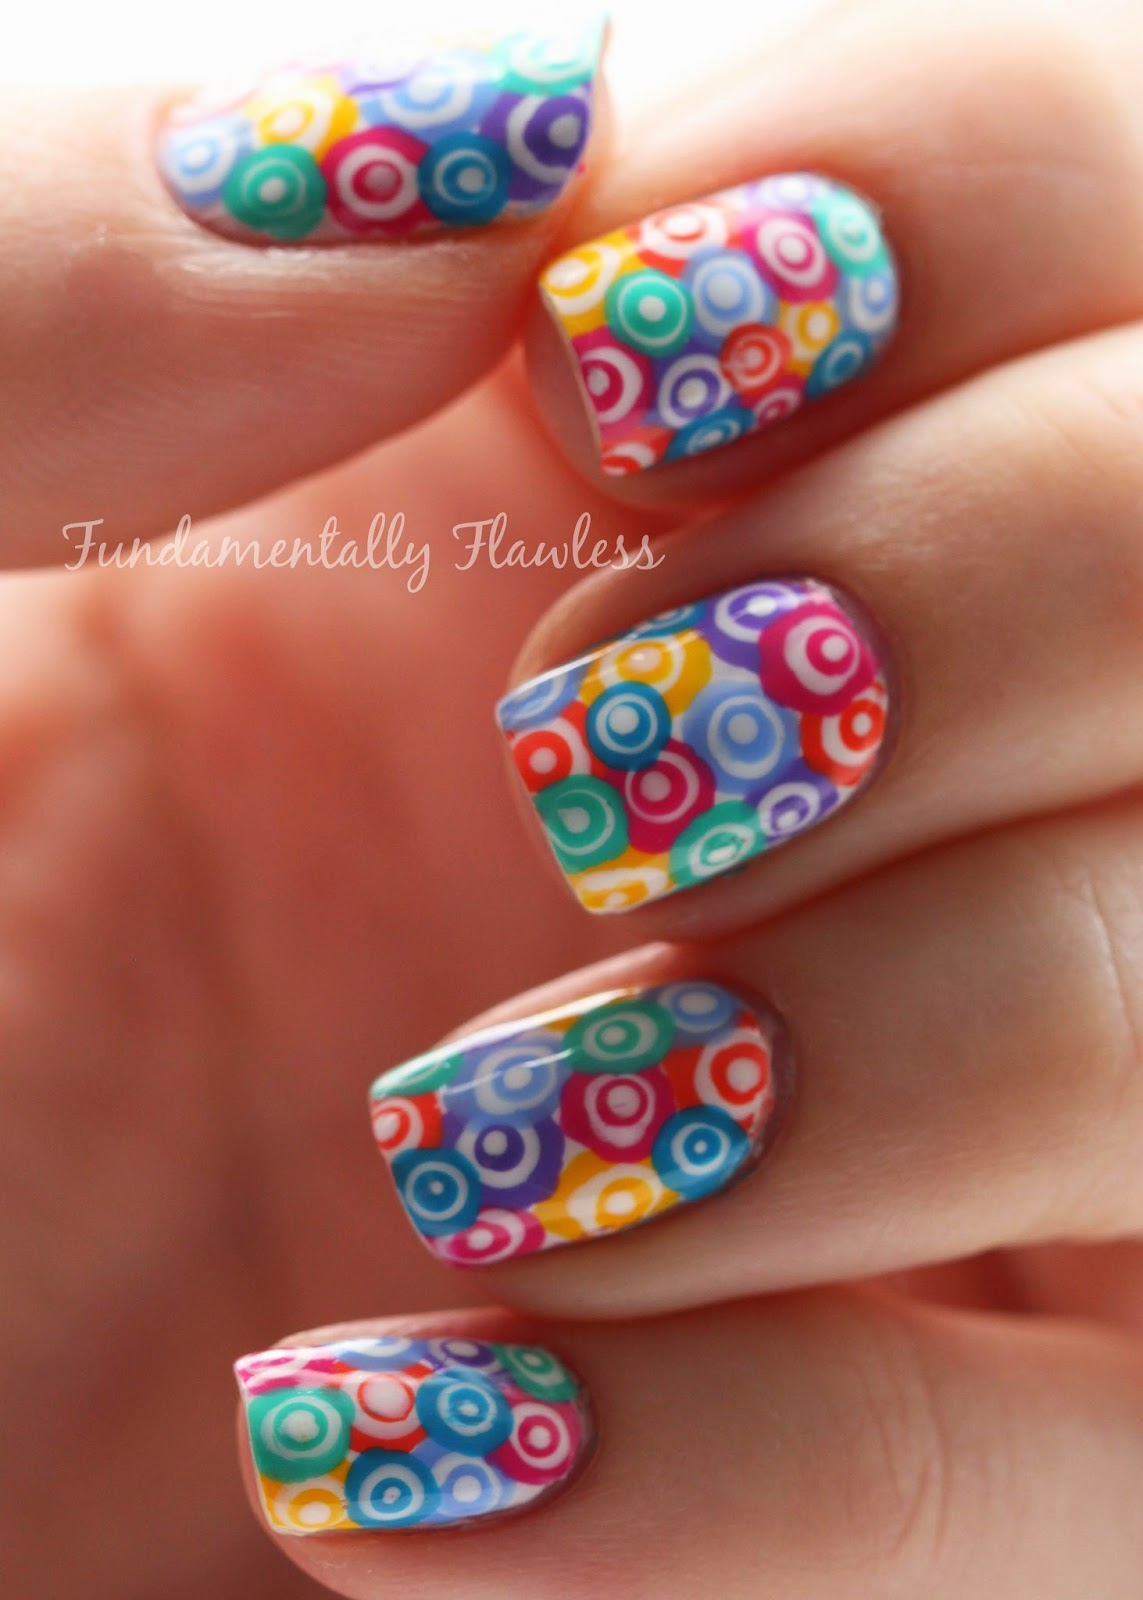 Murano glass concentric rainbow circles nail art